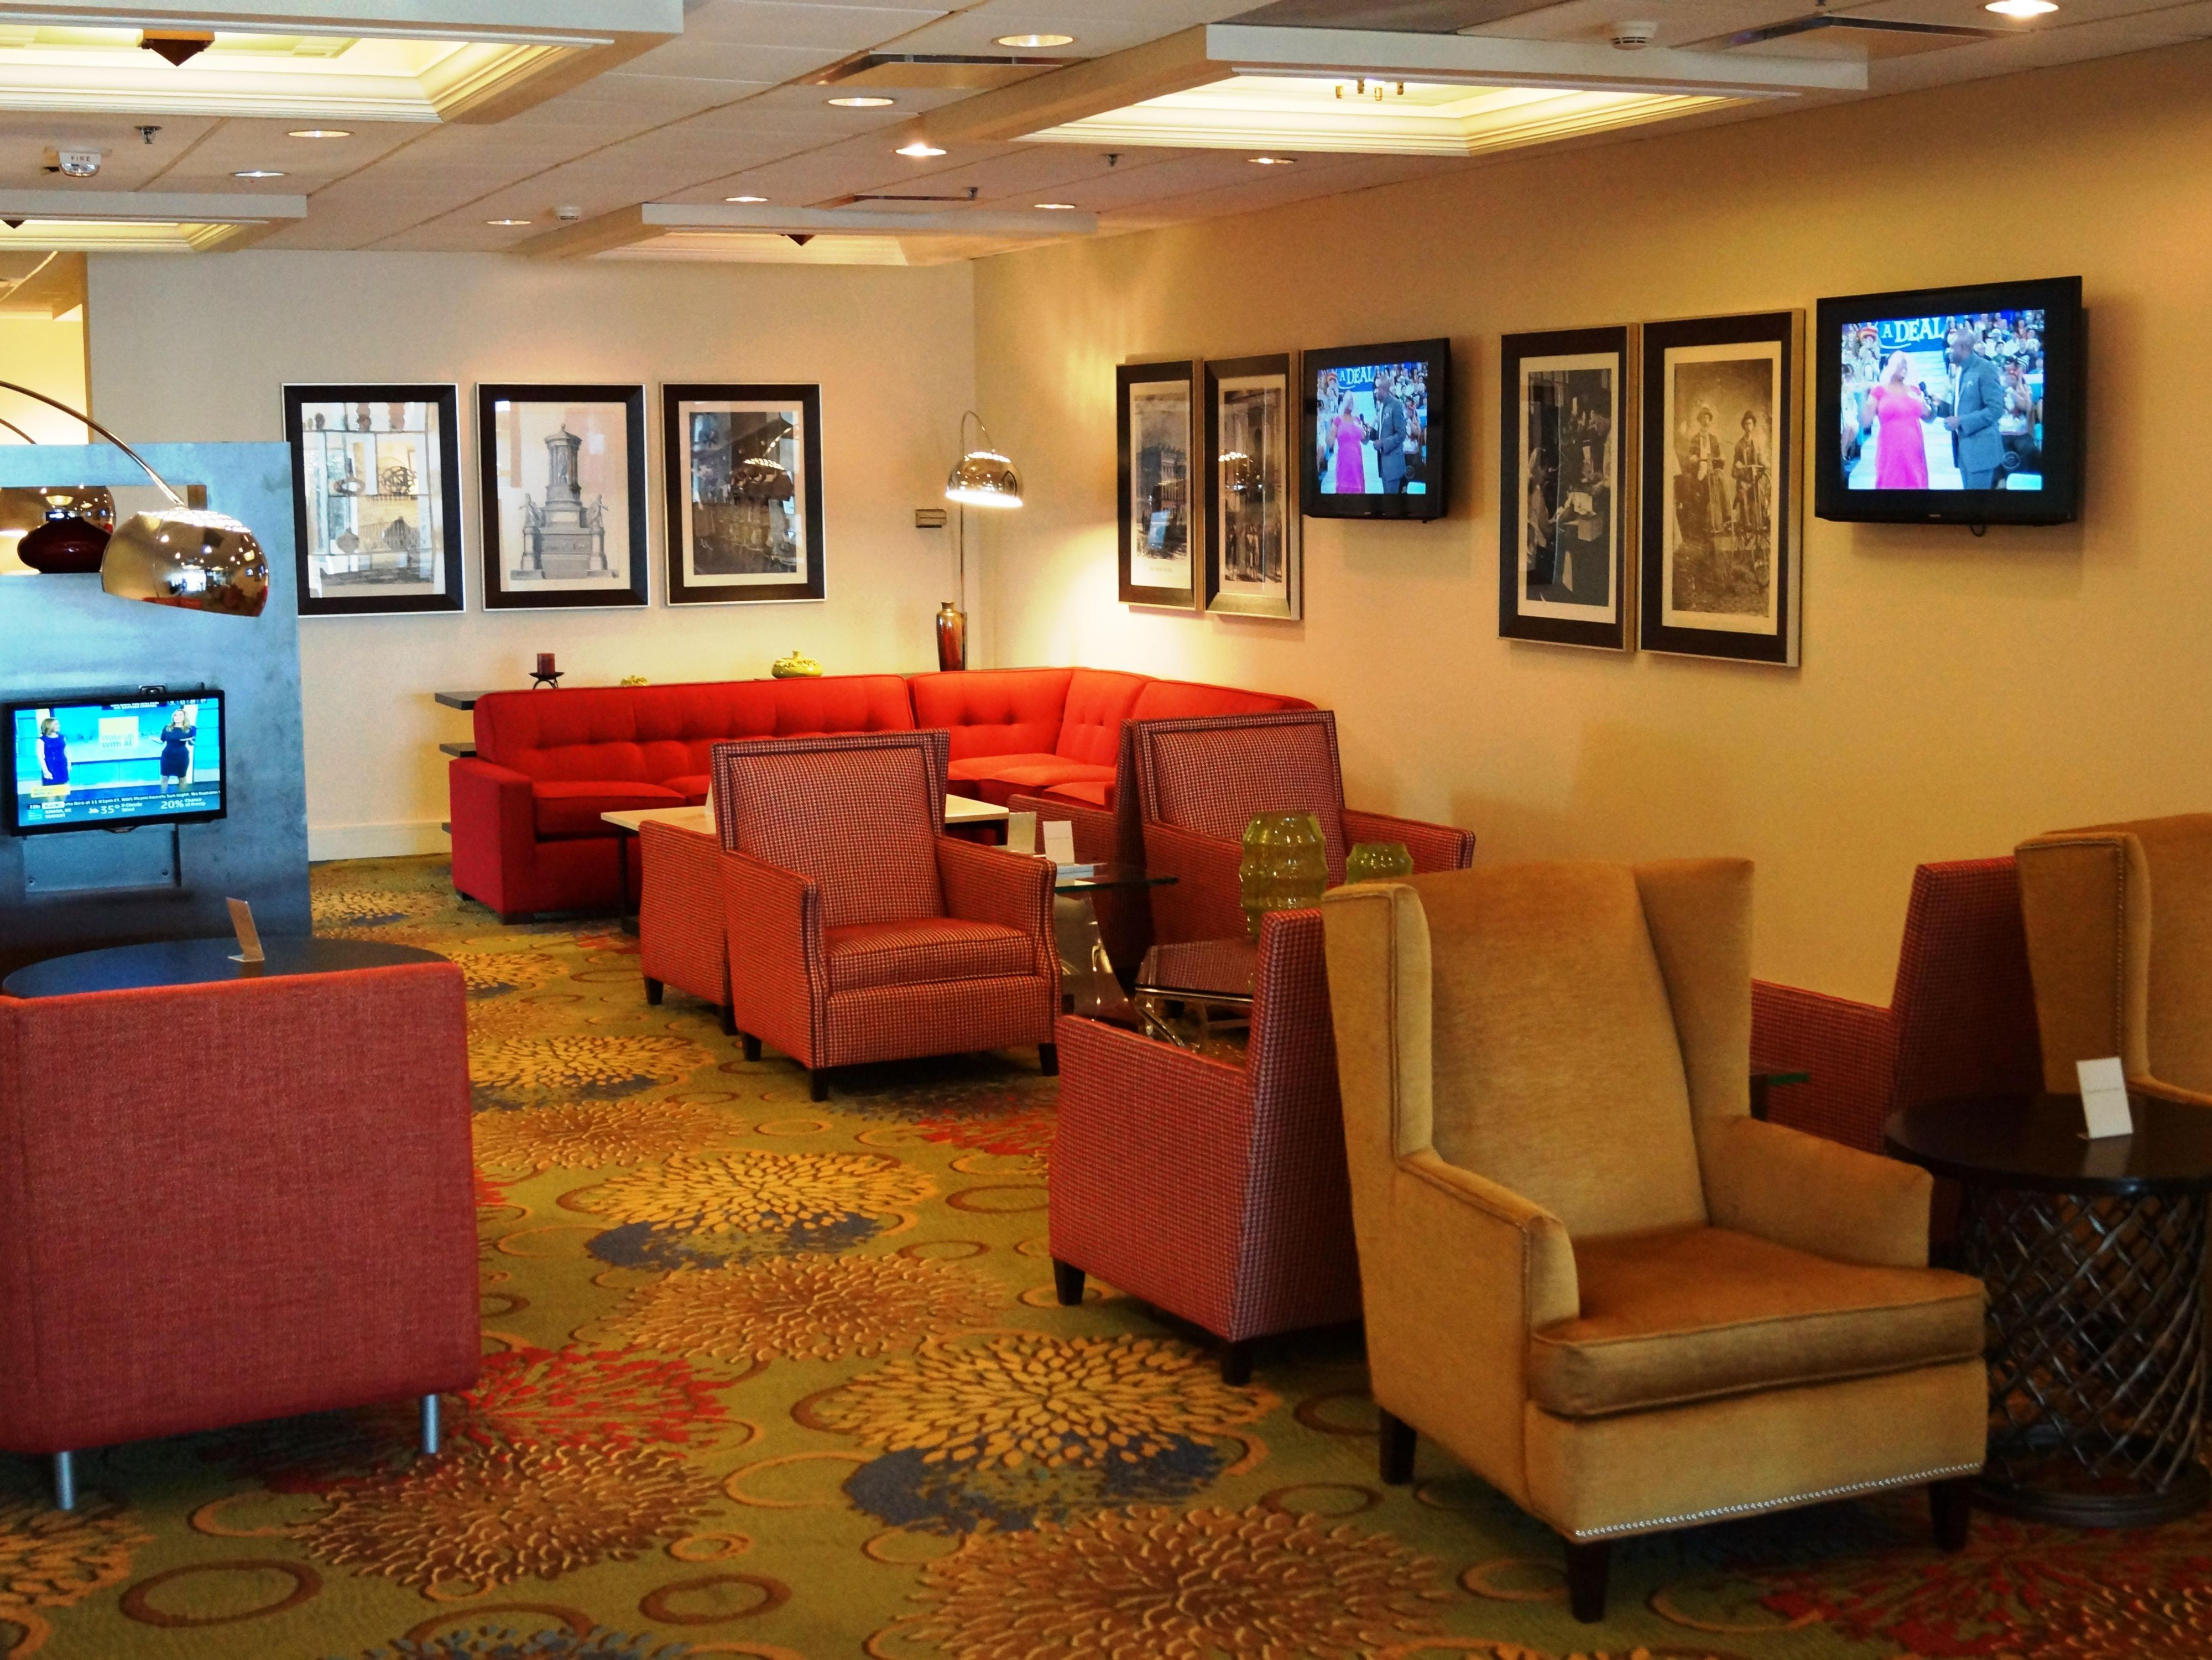 The perfect place to relax and catch up on news or sports